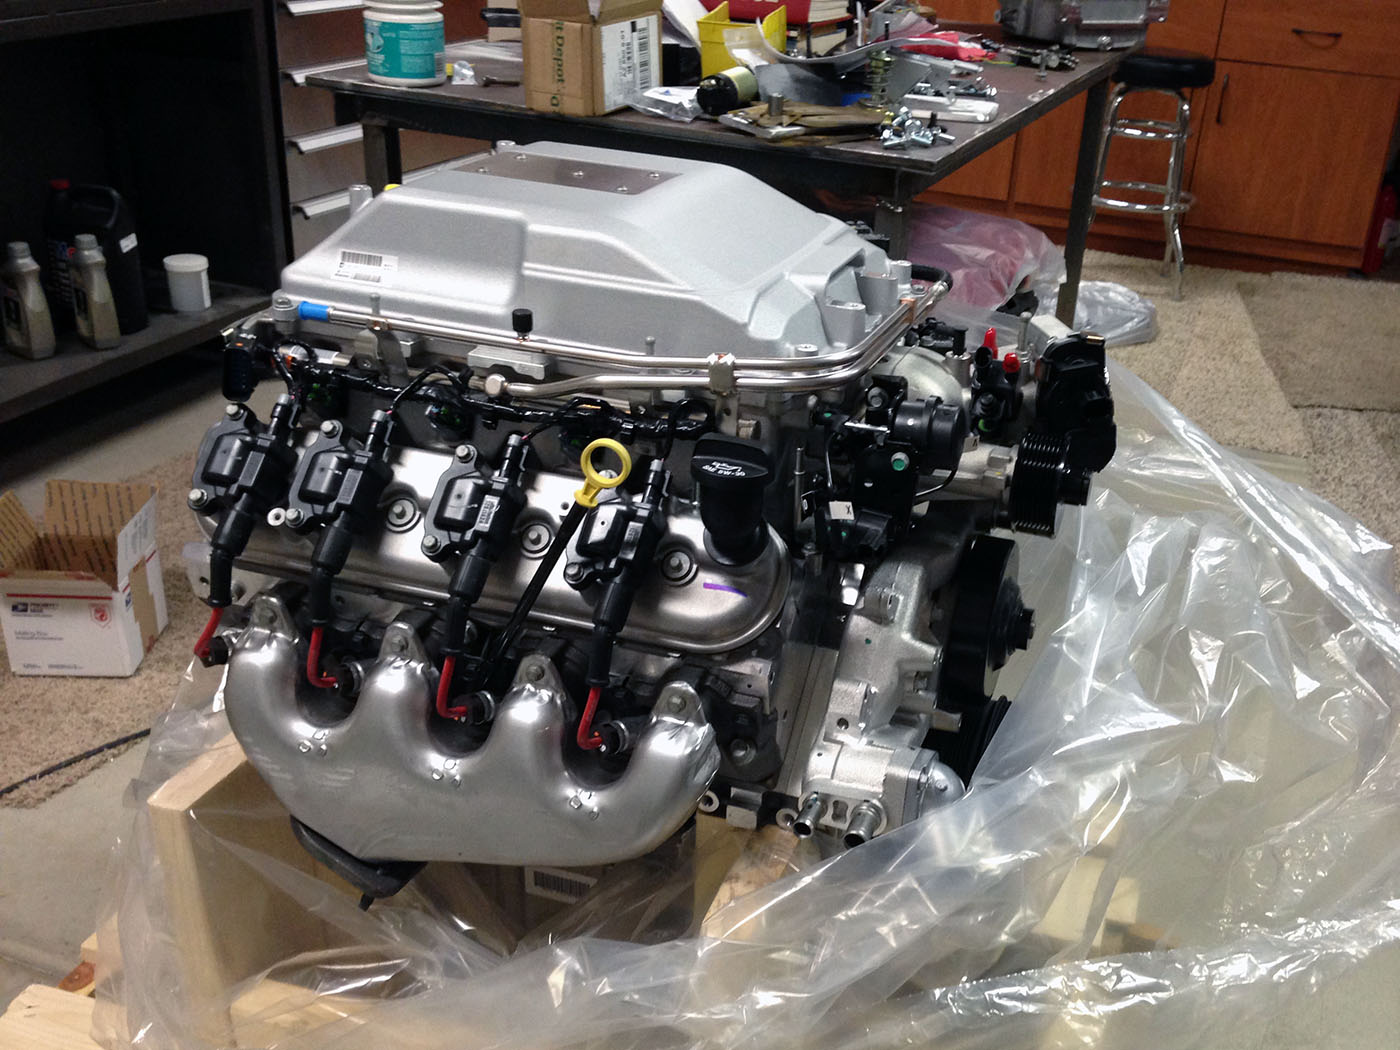 1986 buick grand national with a twincharged lsa engine swap depot rh engineswapdepot com 87 Buick GN 1979 Buick Riviera